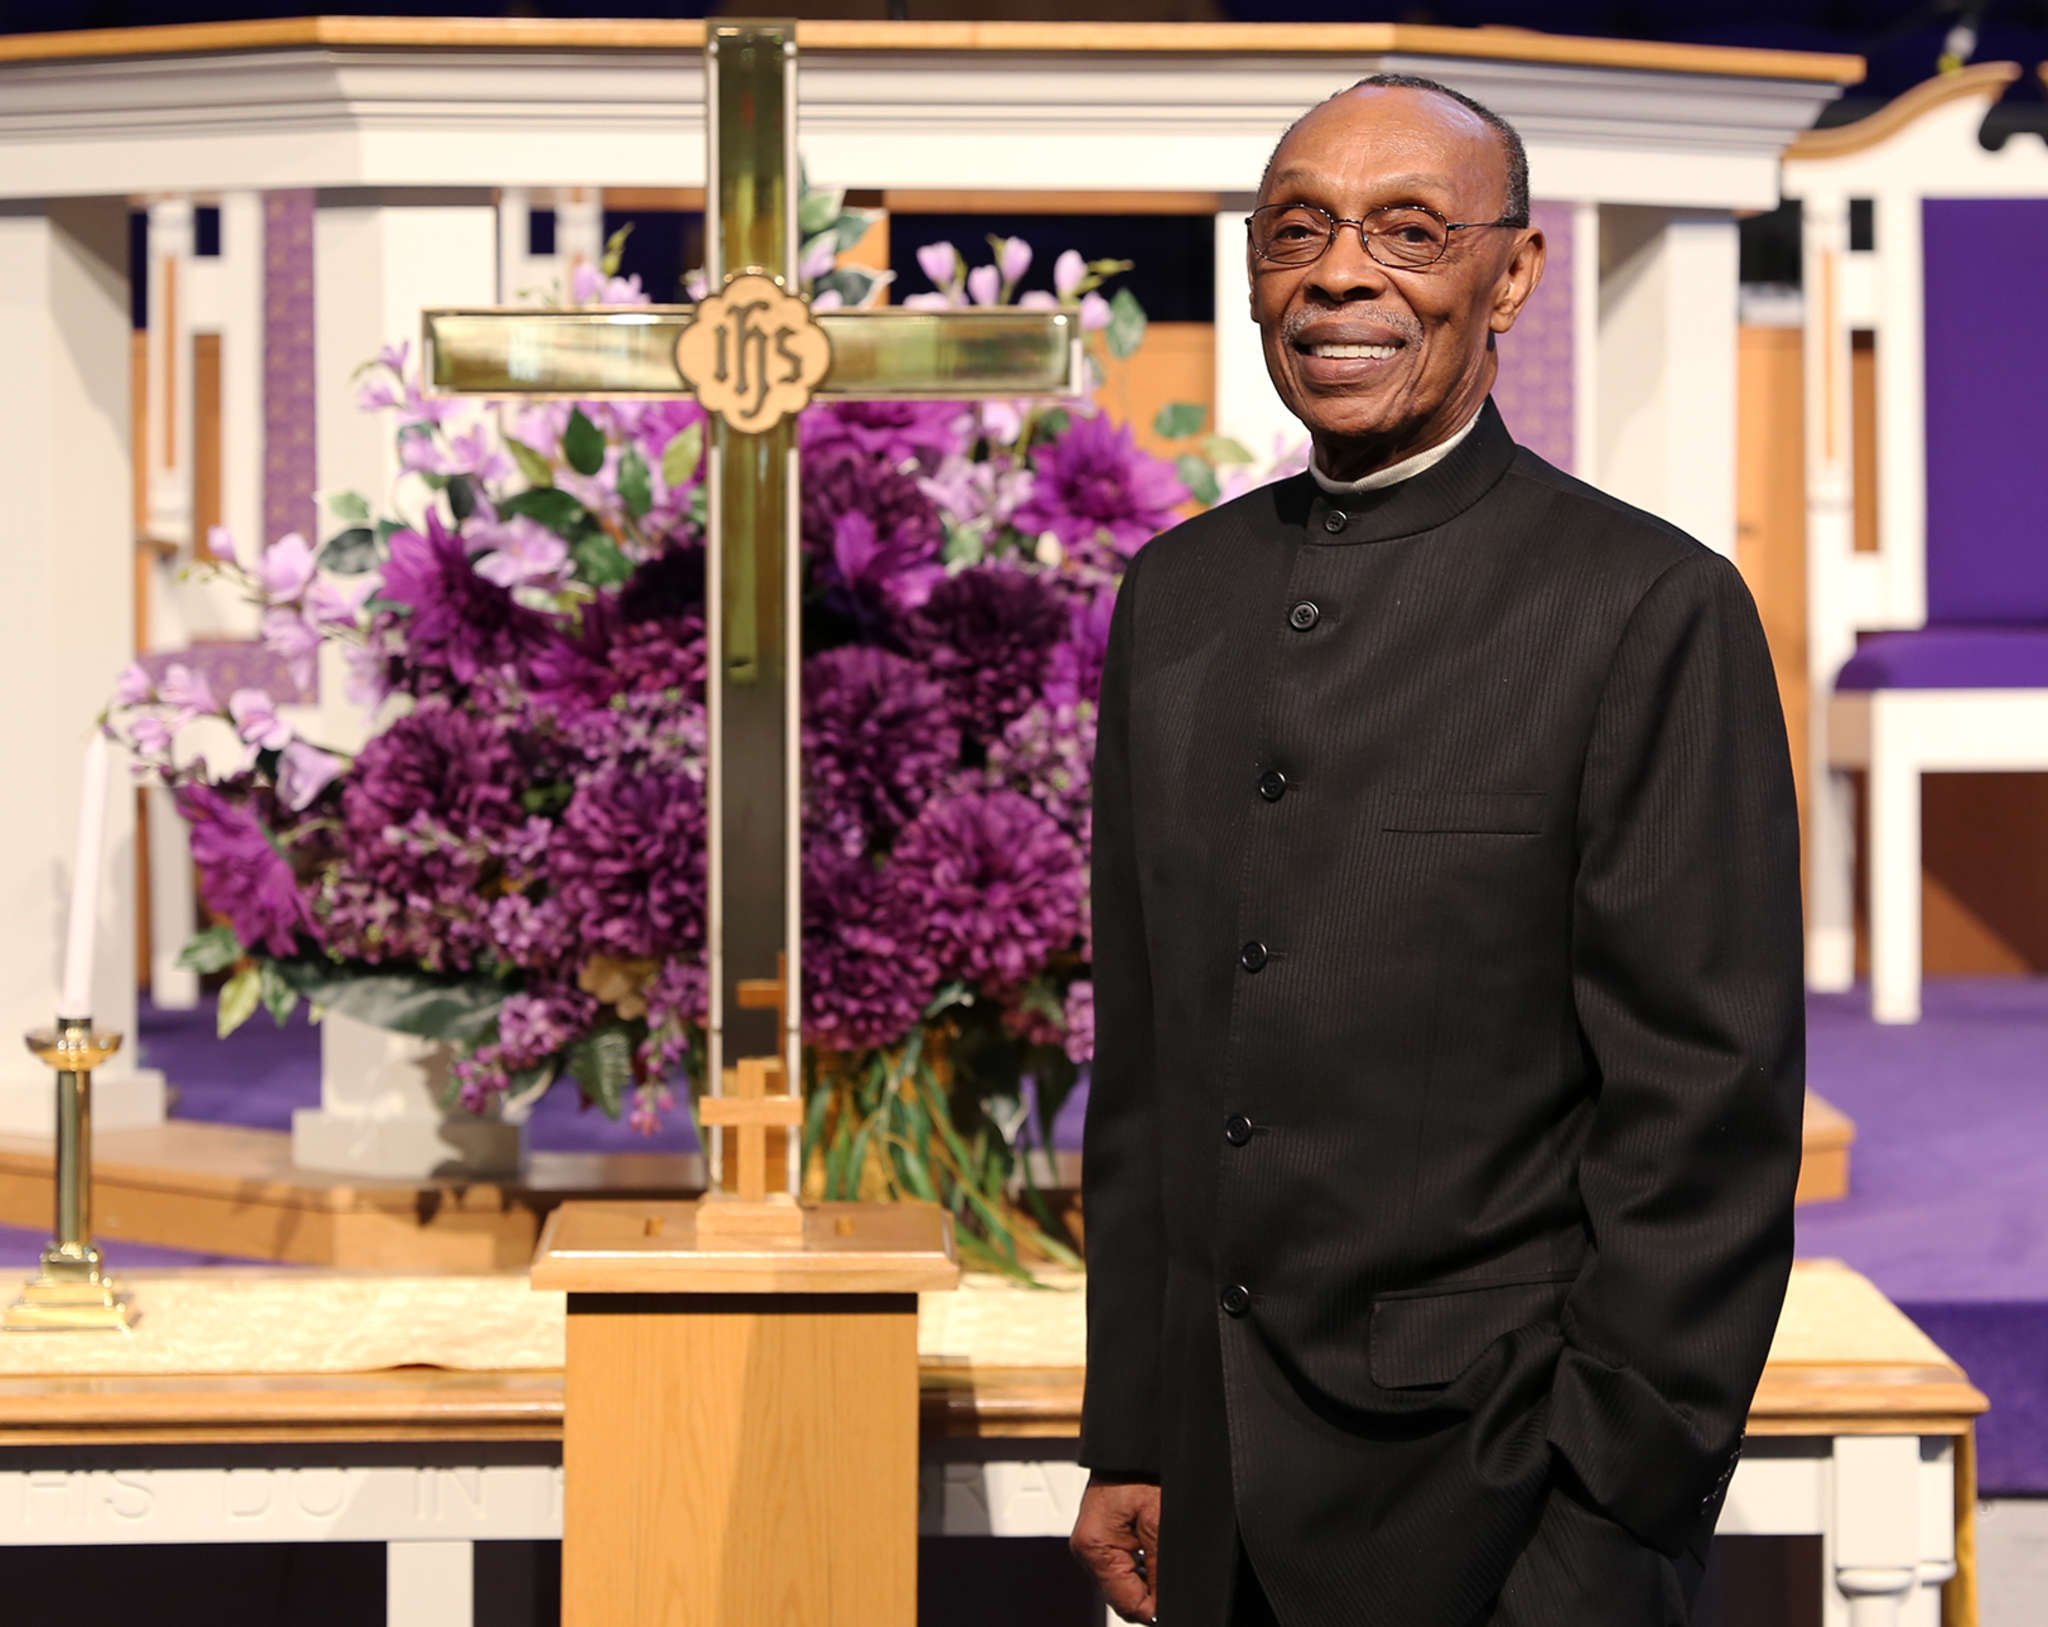 triumph baptist church honors pastor james s. hall jr. for 65